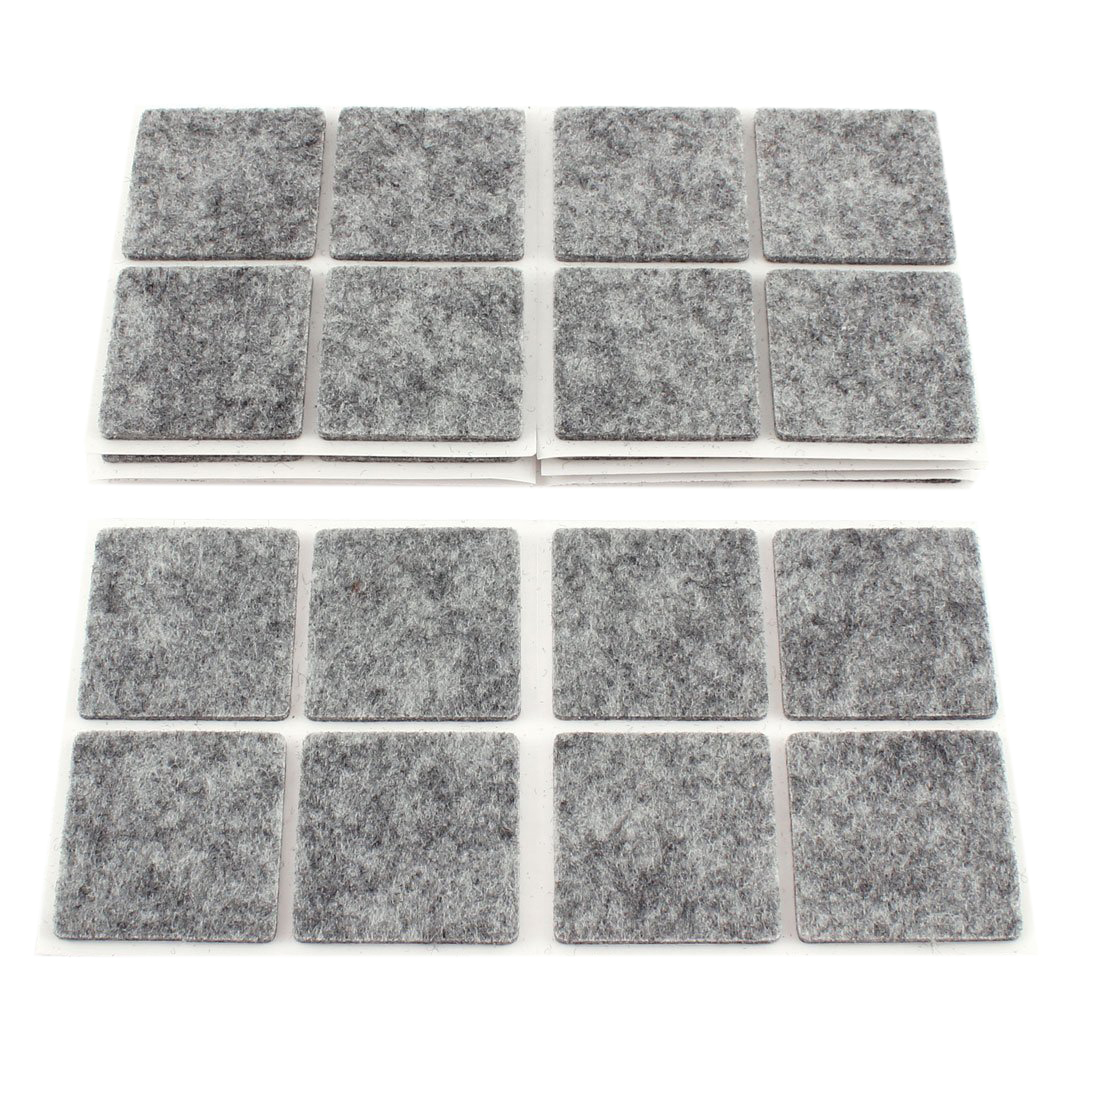 Hot Sale 40pcs Furniture Feet Antislip Adhesive Felt Floor Protector Pads No-noise Furniture Table Leg Rug Felt Pads Bumper Damp